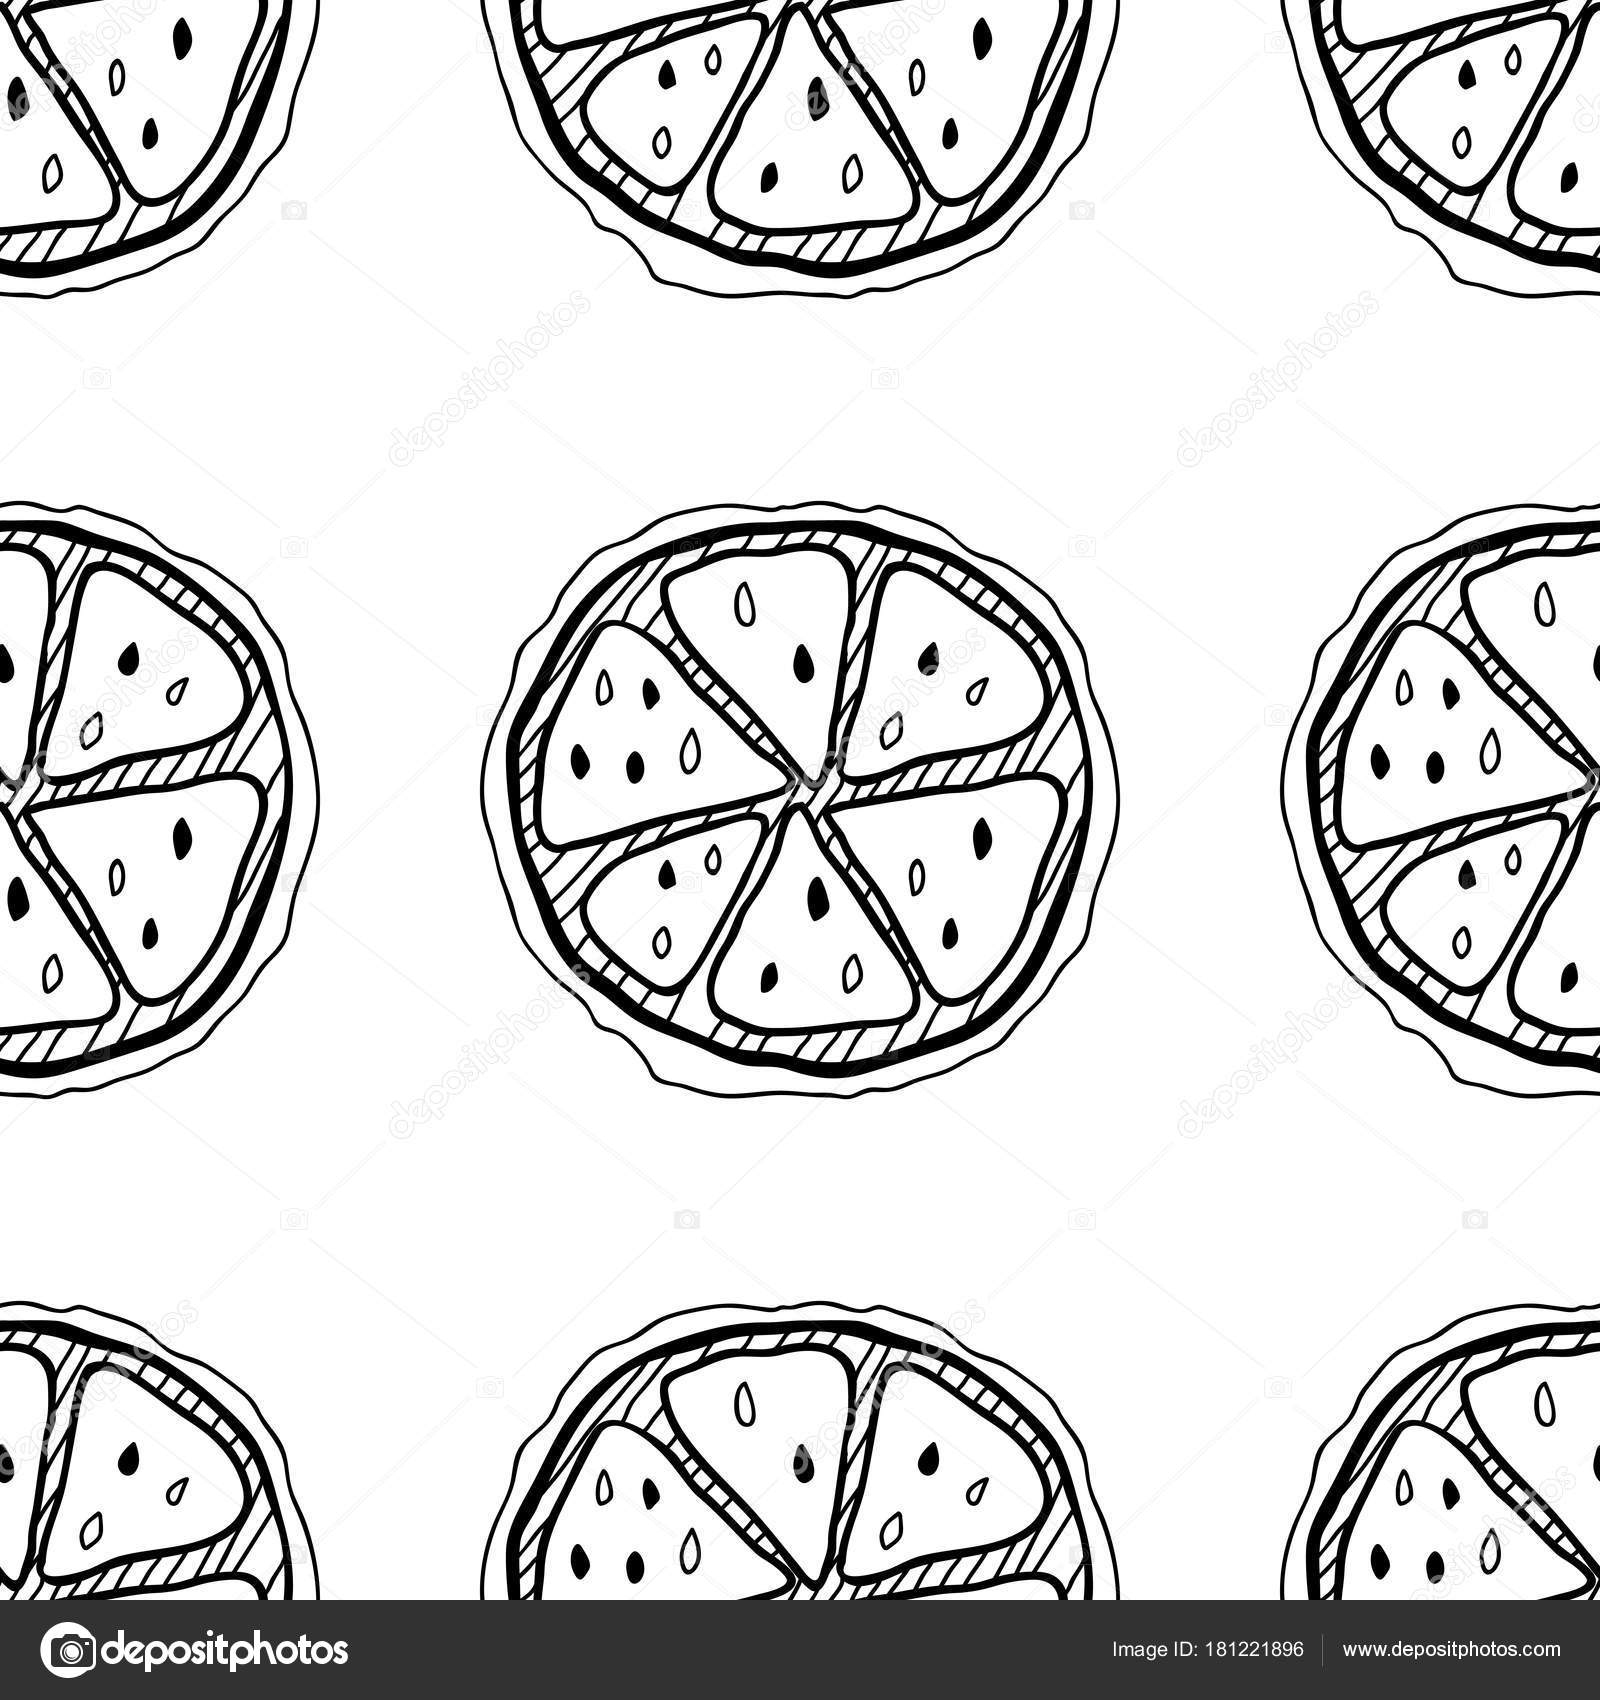 Slices Of Lemons Seamless Pattern With Hand Drawn Fruits Black